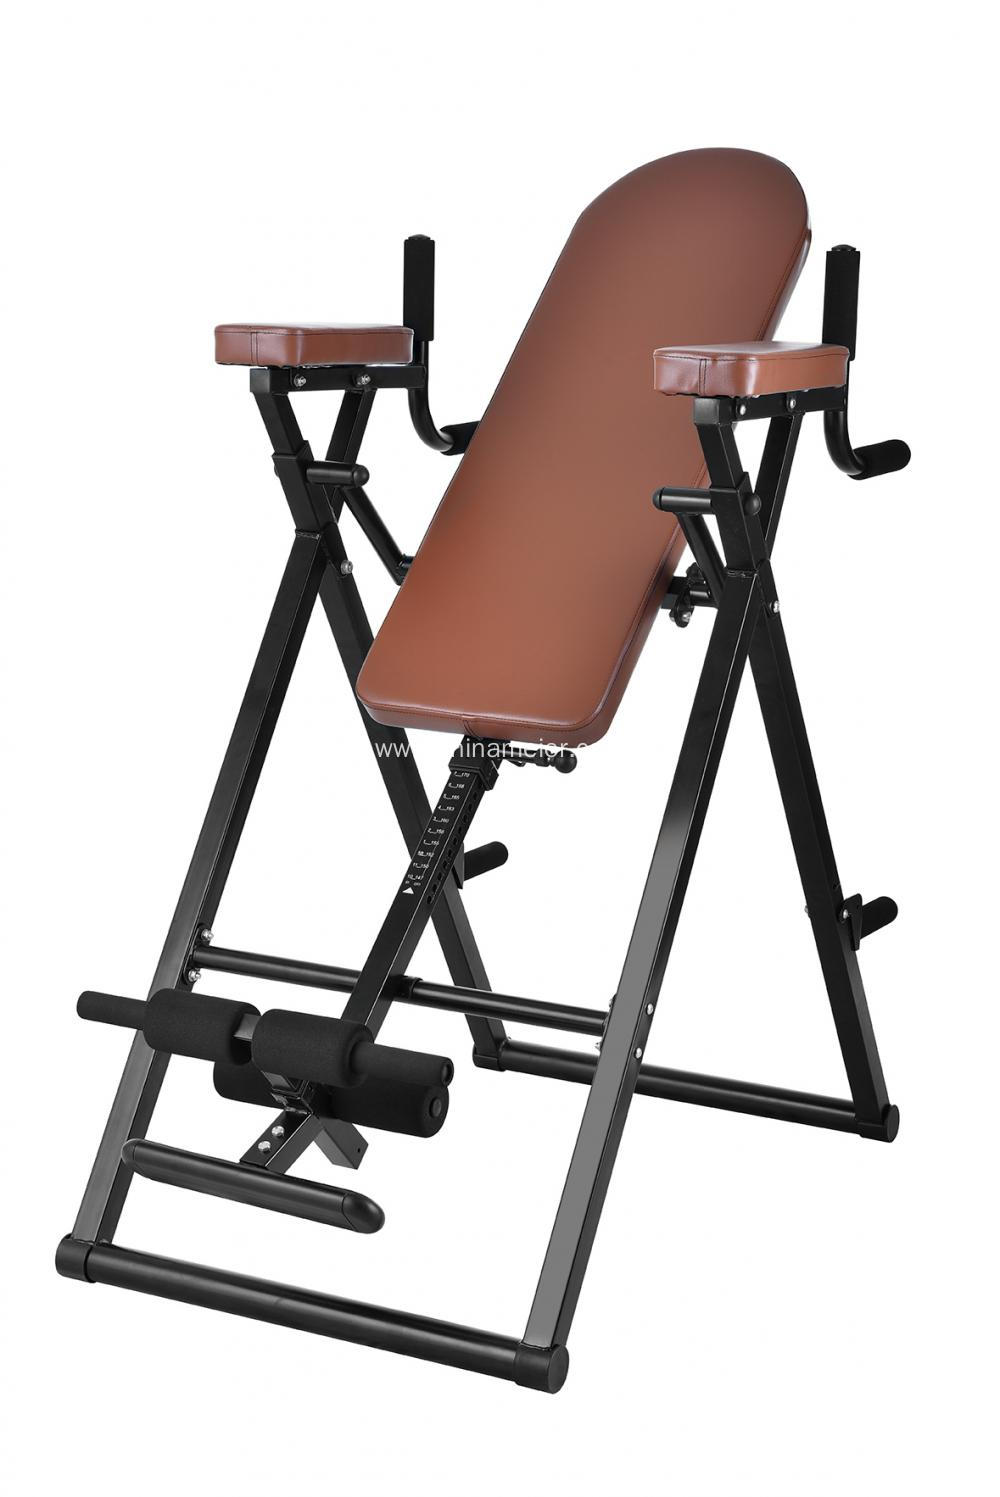 Multifunctional inversion table In Fitness Markets